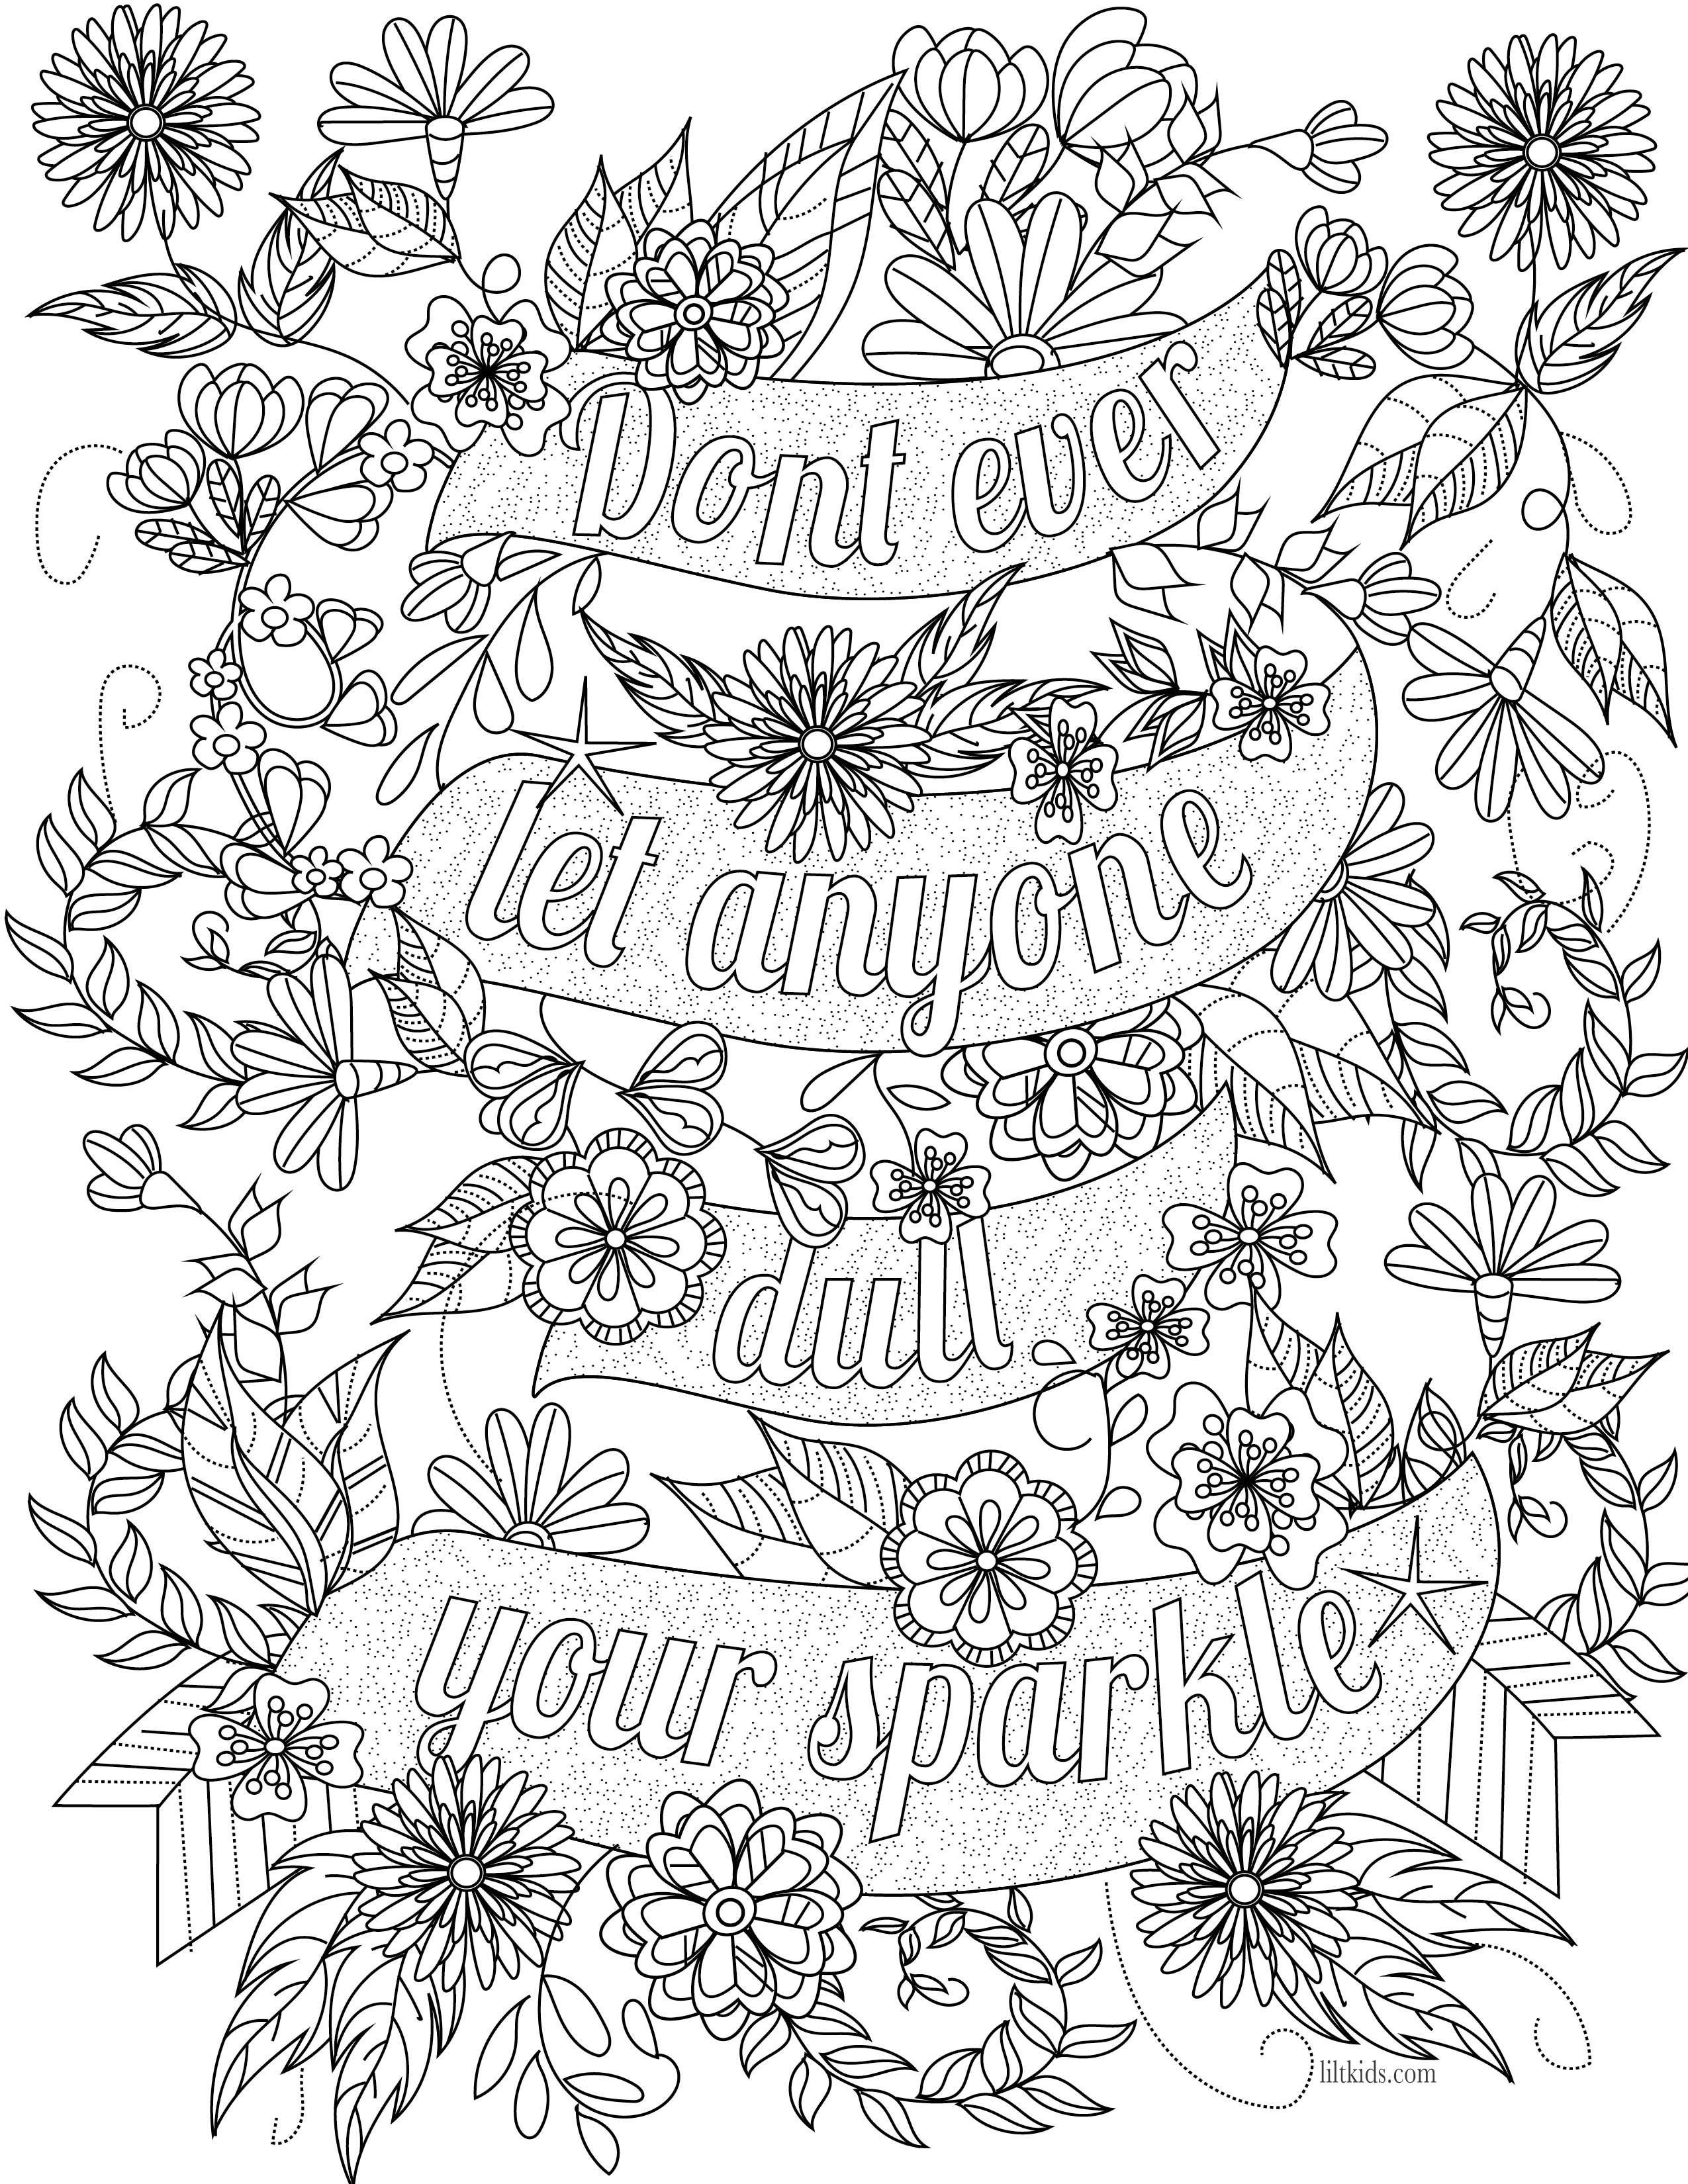 Free Inspirational Quote Adult Coloring Book Image From Liltkids - Free Printable Quote Coloring Pages For Adults